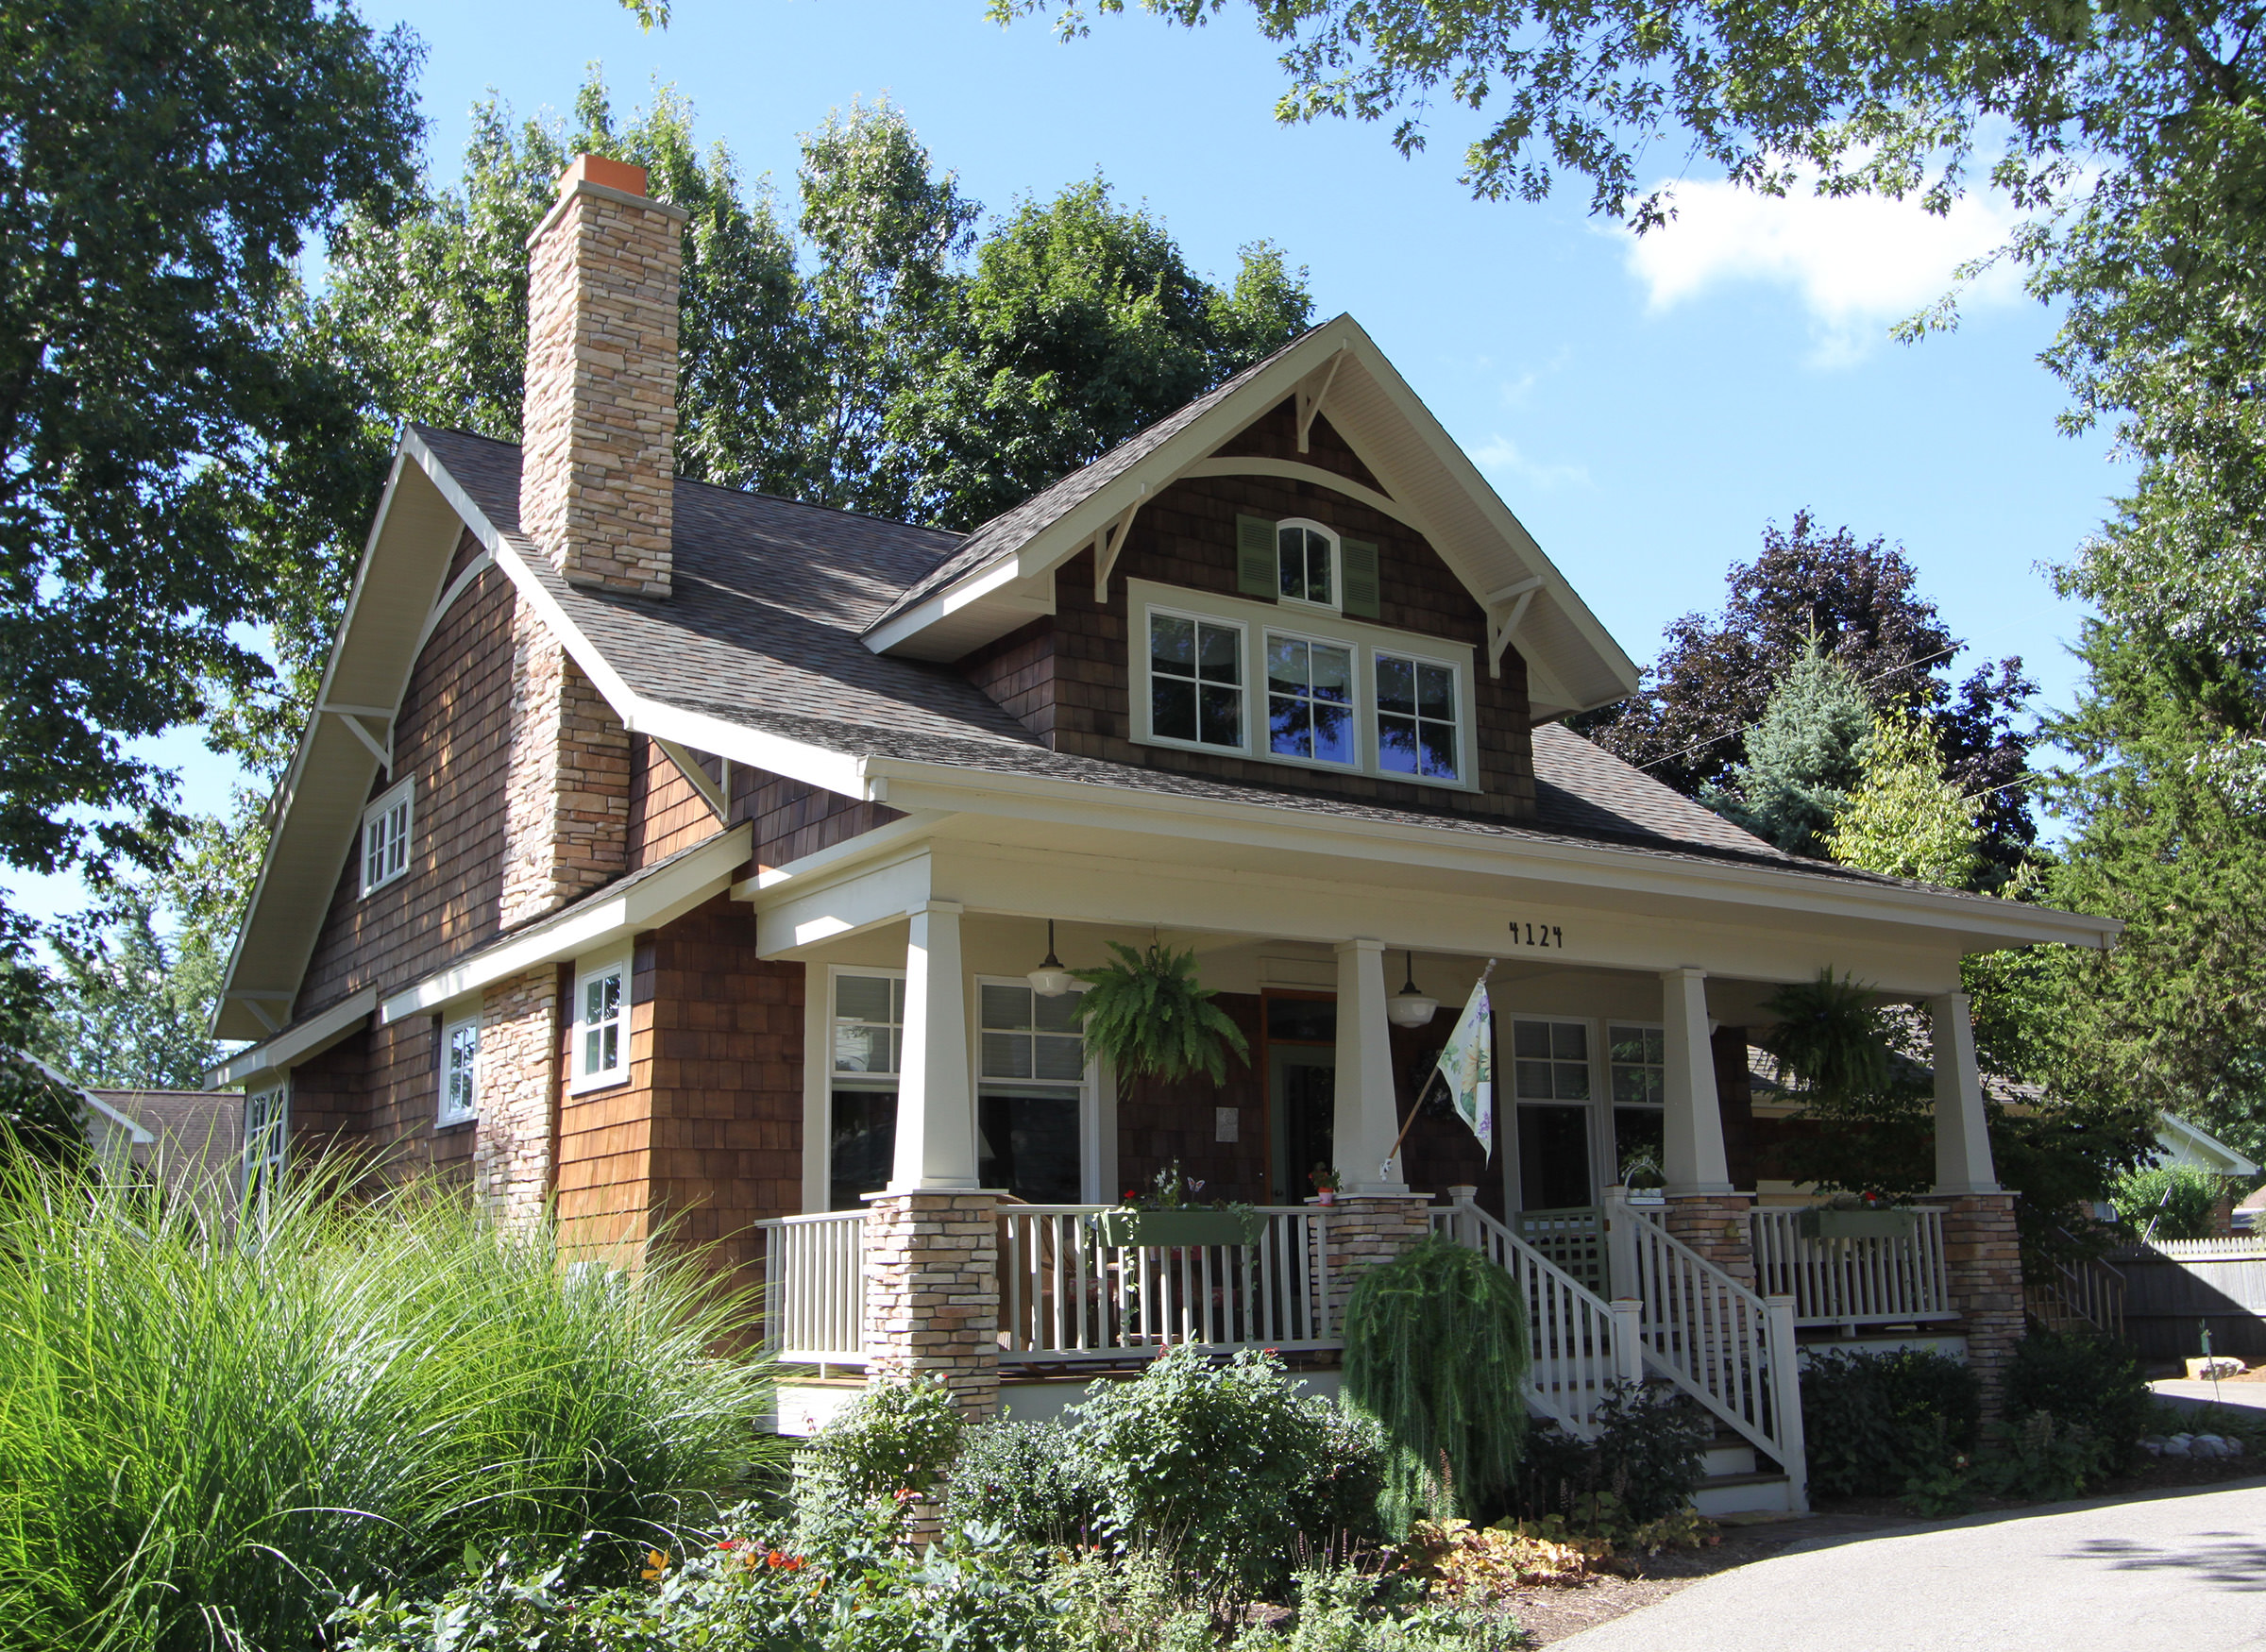 32 types of architectural styles for the home modern for Craftsman style homes exterior photos